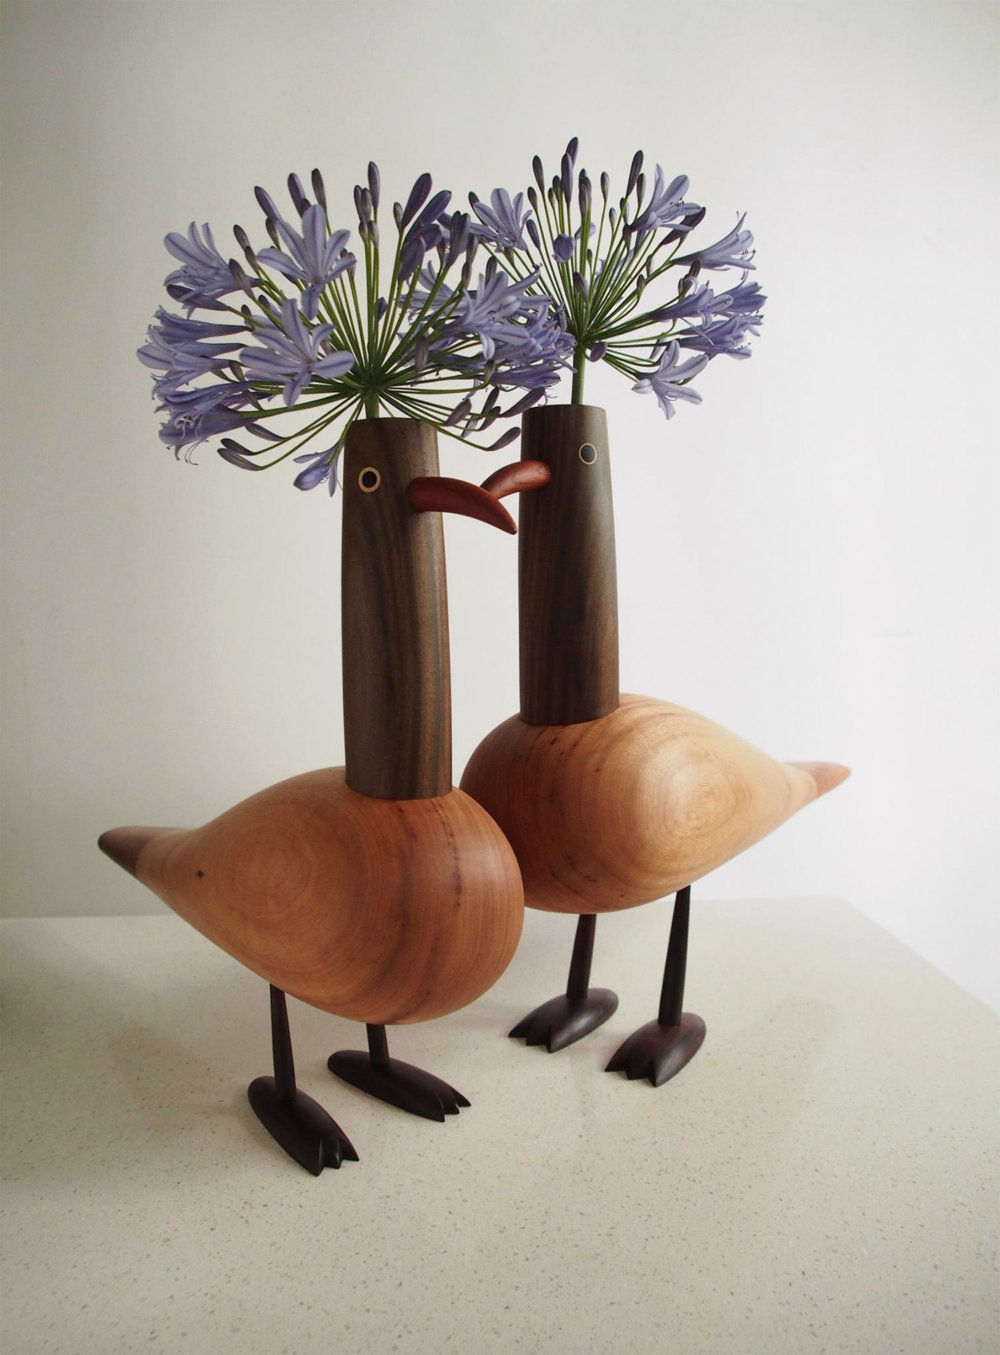 Peculiar Creatures Amusing Cartoon Like Wood Toys And Vases By Yen Jui Lin 9